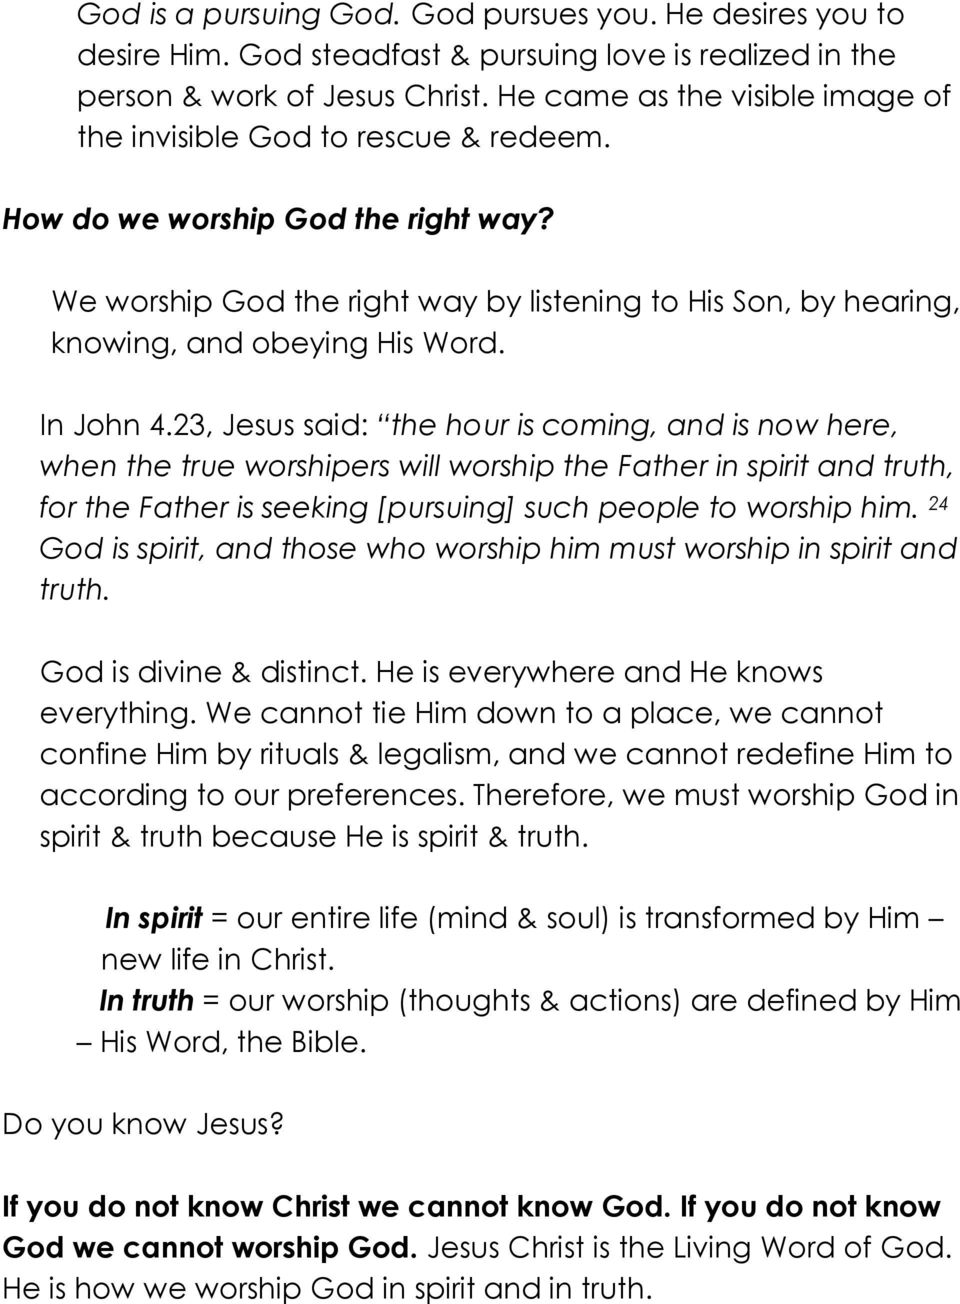 We worship God the right way by listening to His Son, by hearing, knowing, and obeying His Word. In John 4.